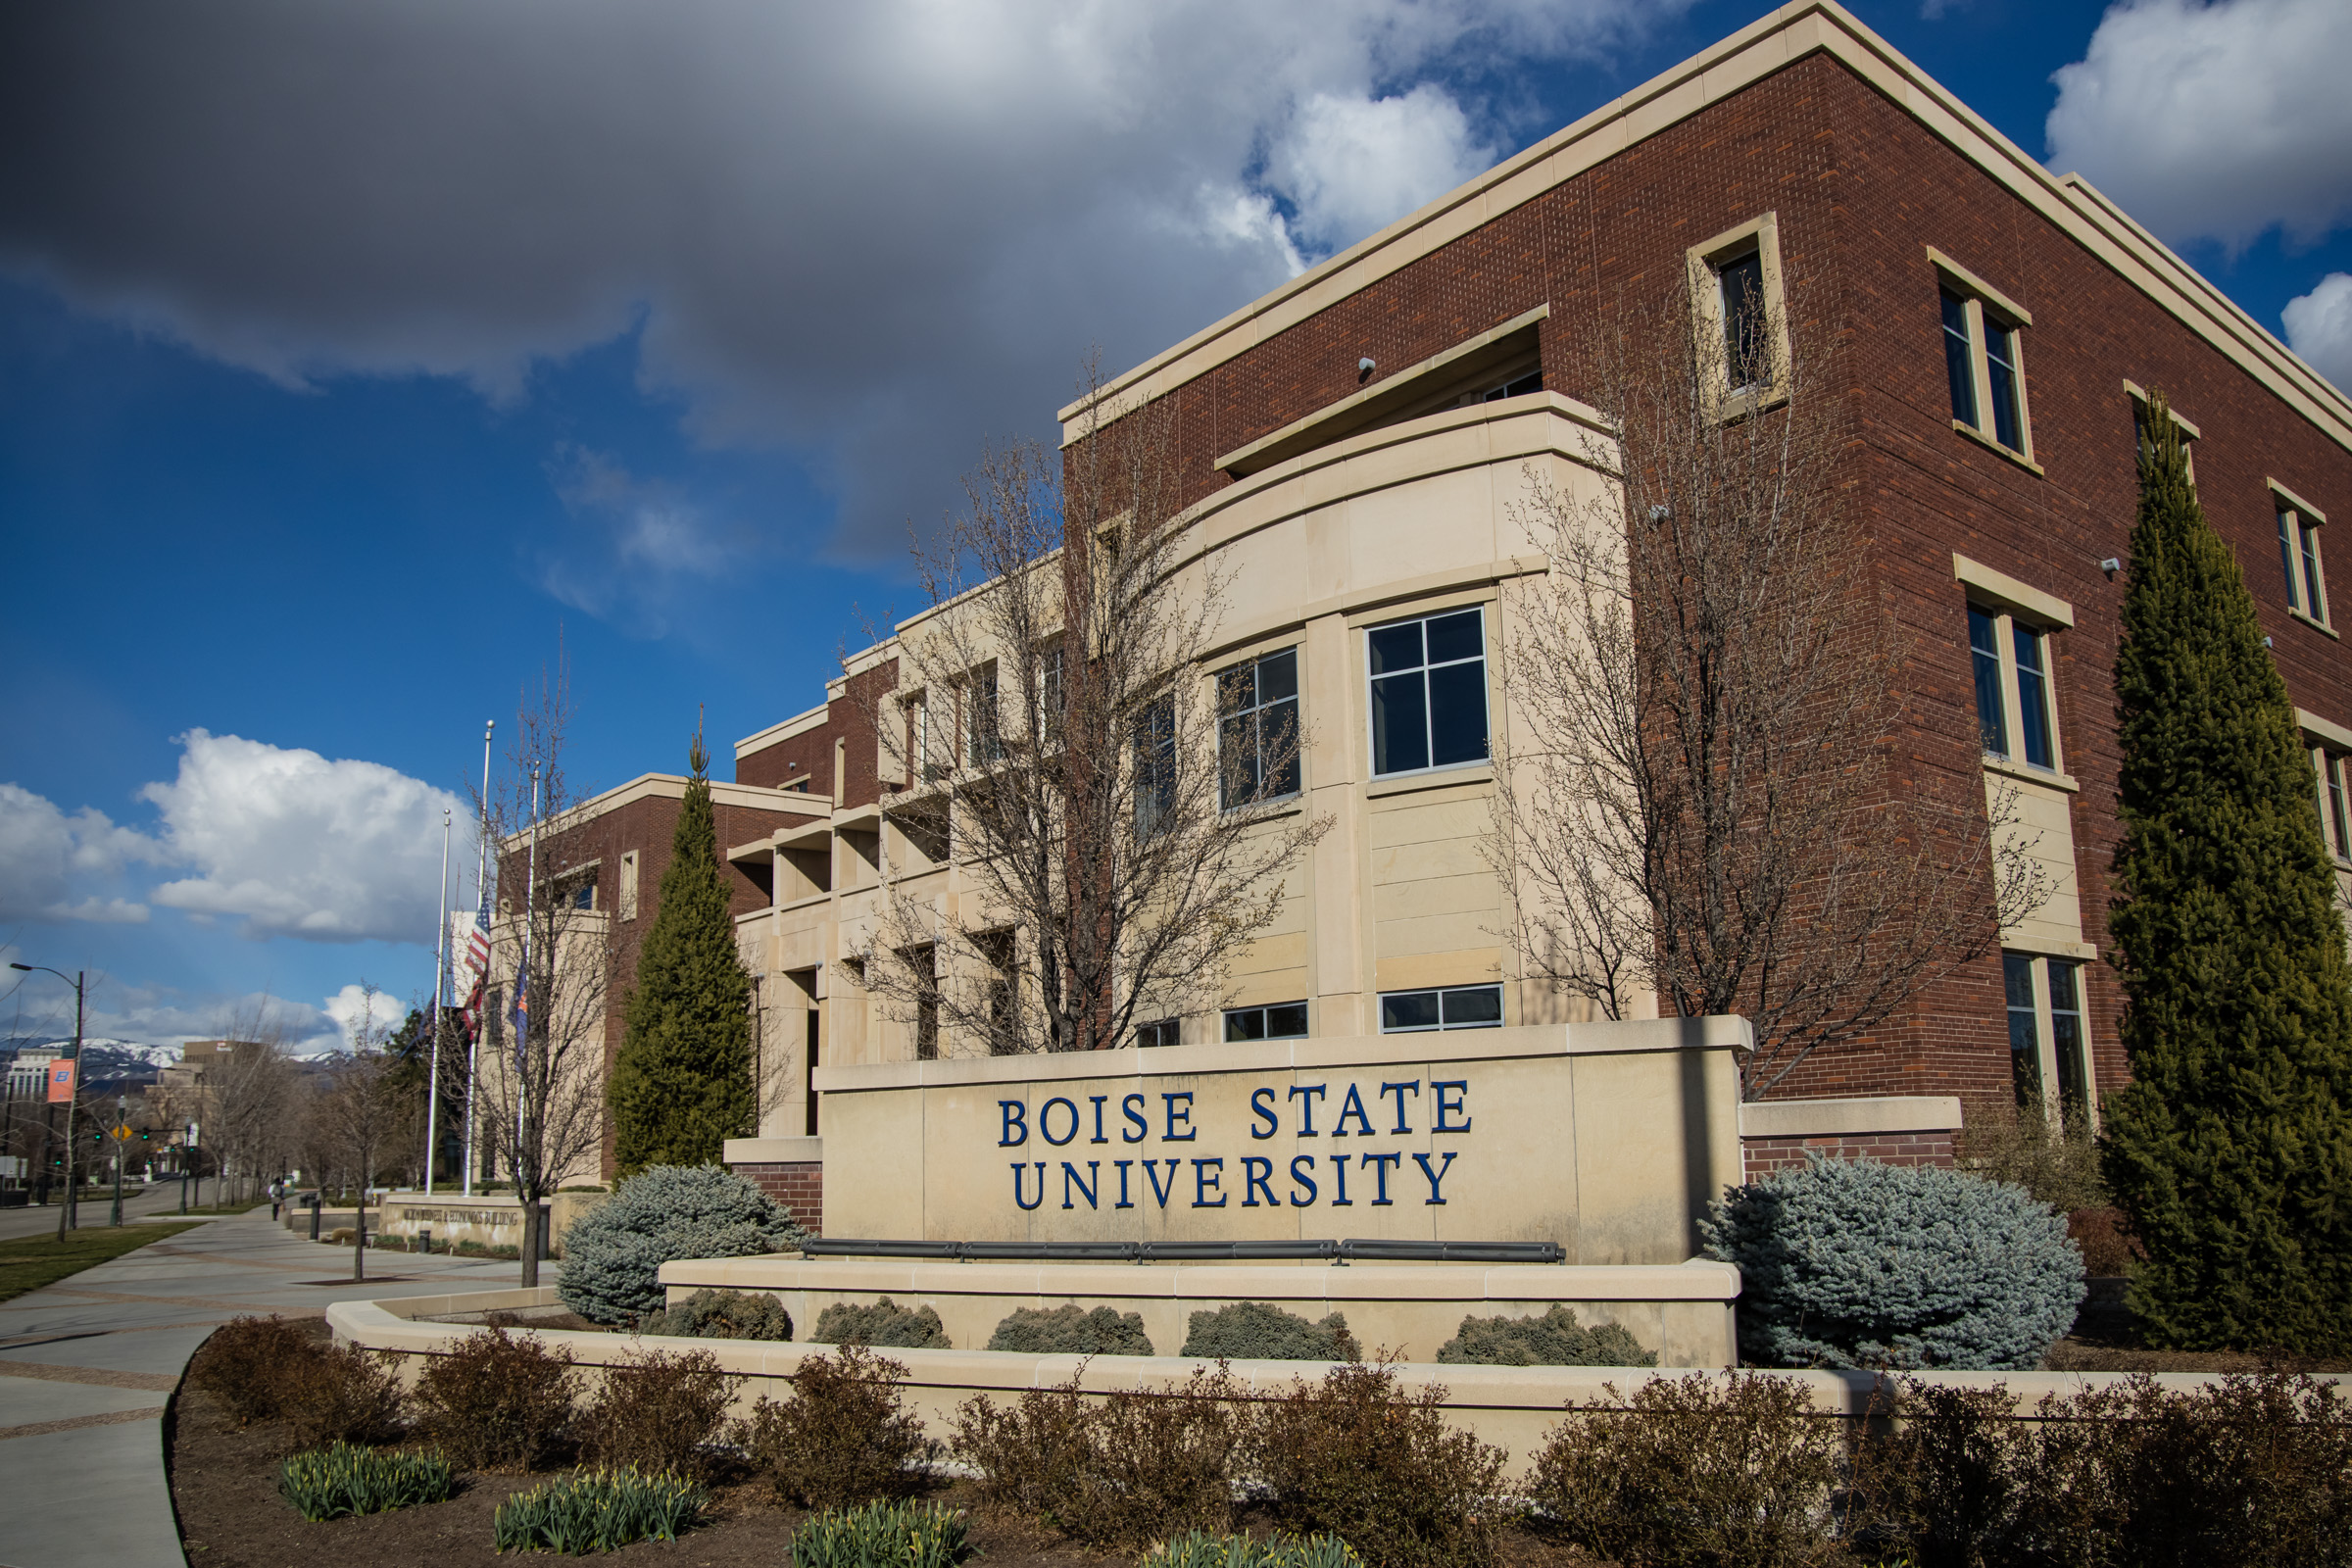 Boise State campus